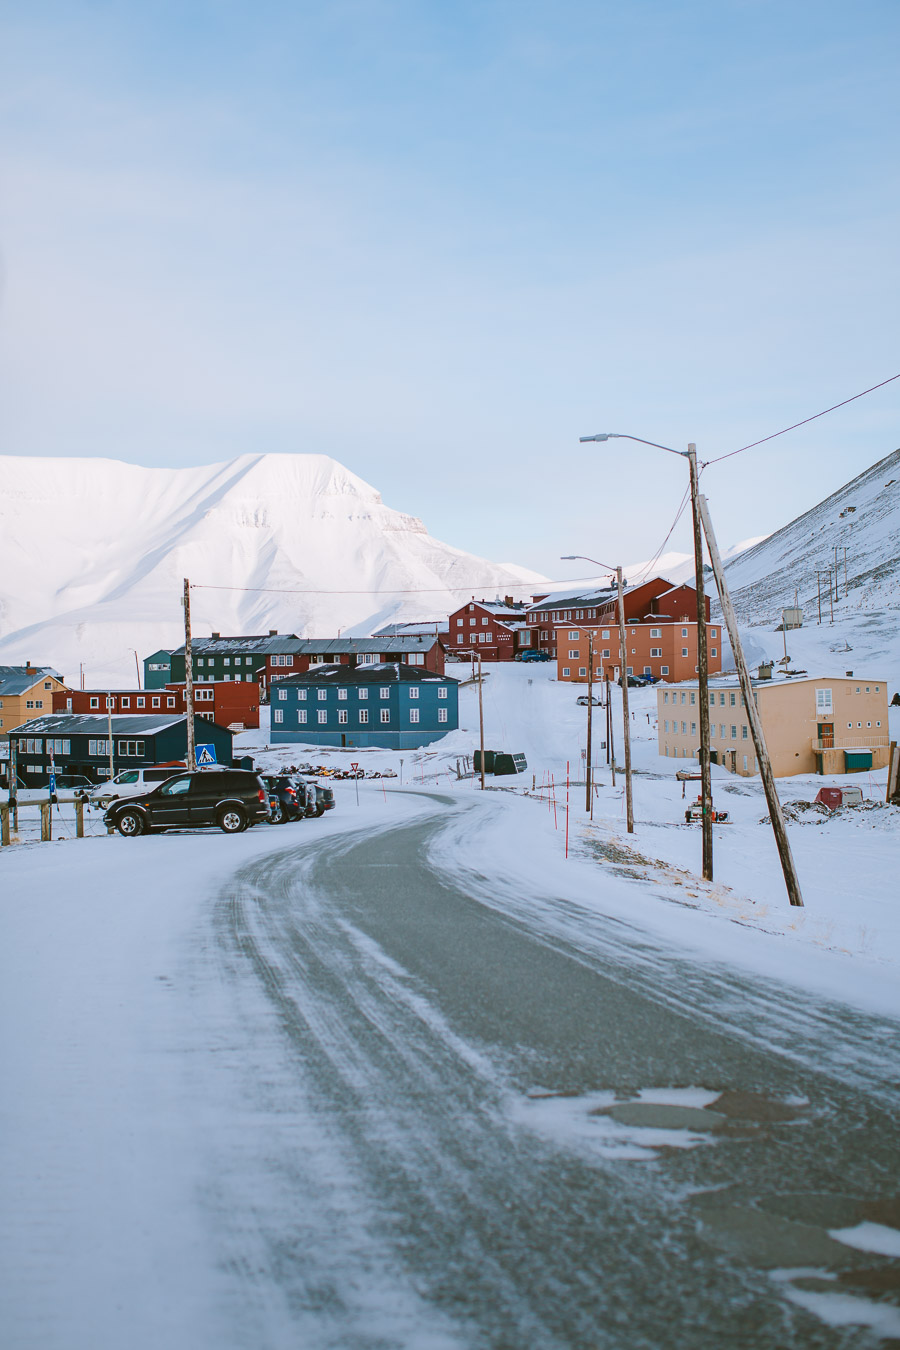 Colourful houses of Longyearbyen city